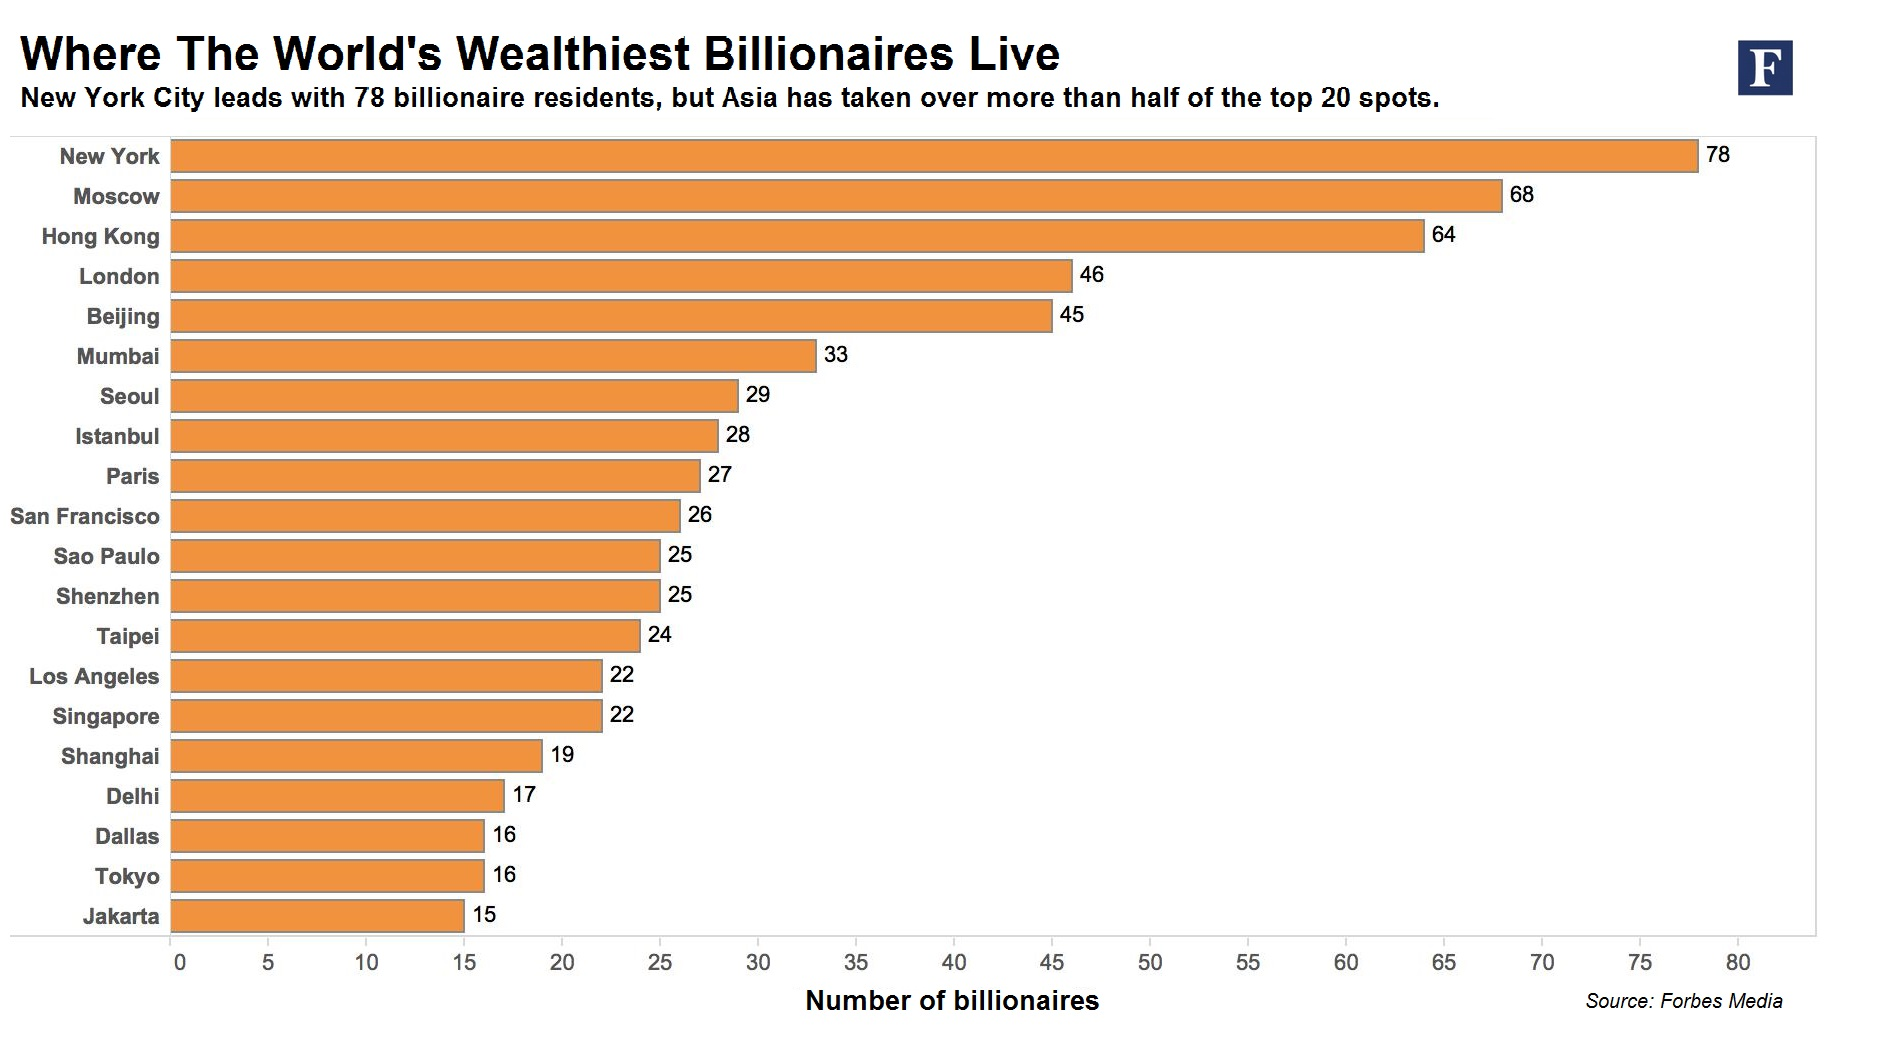 Where The Worlds Wealthiest Billionaores Live Viewing NYC - Top 100 richest countries in the world 2015